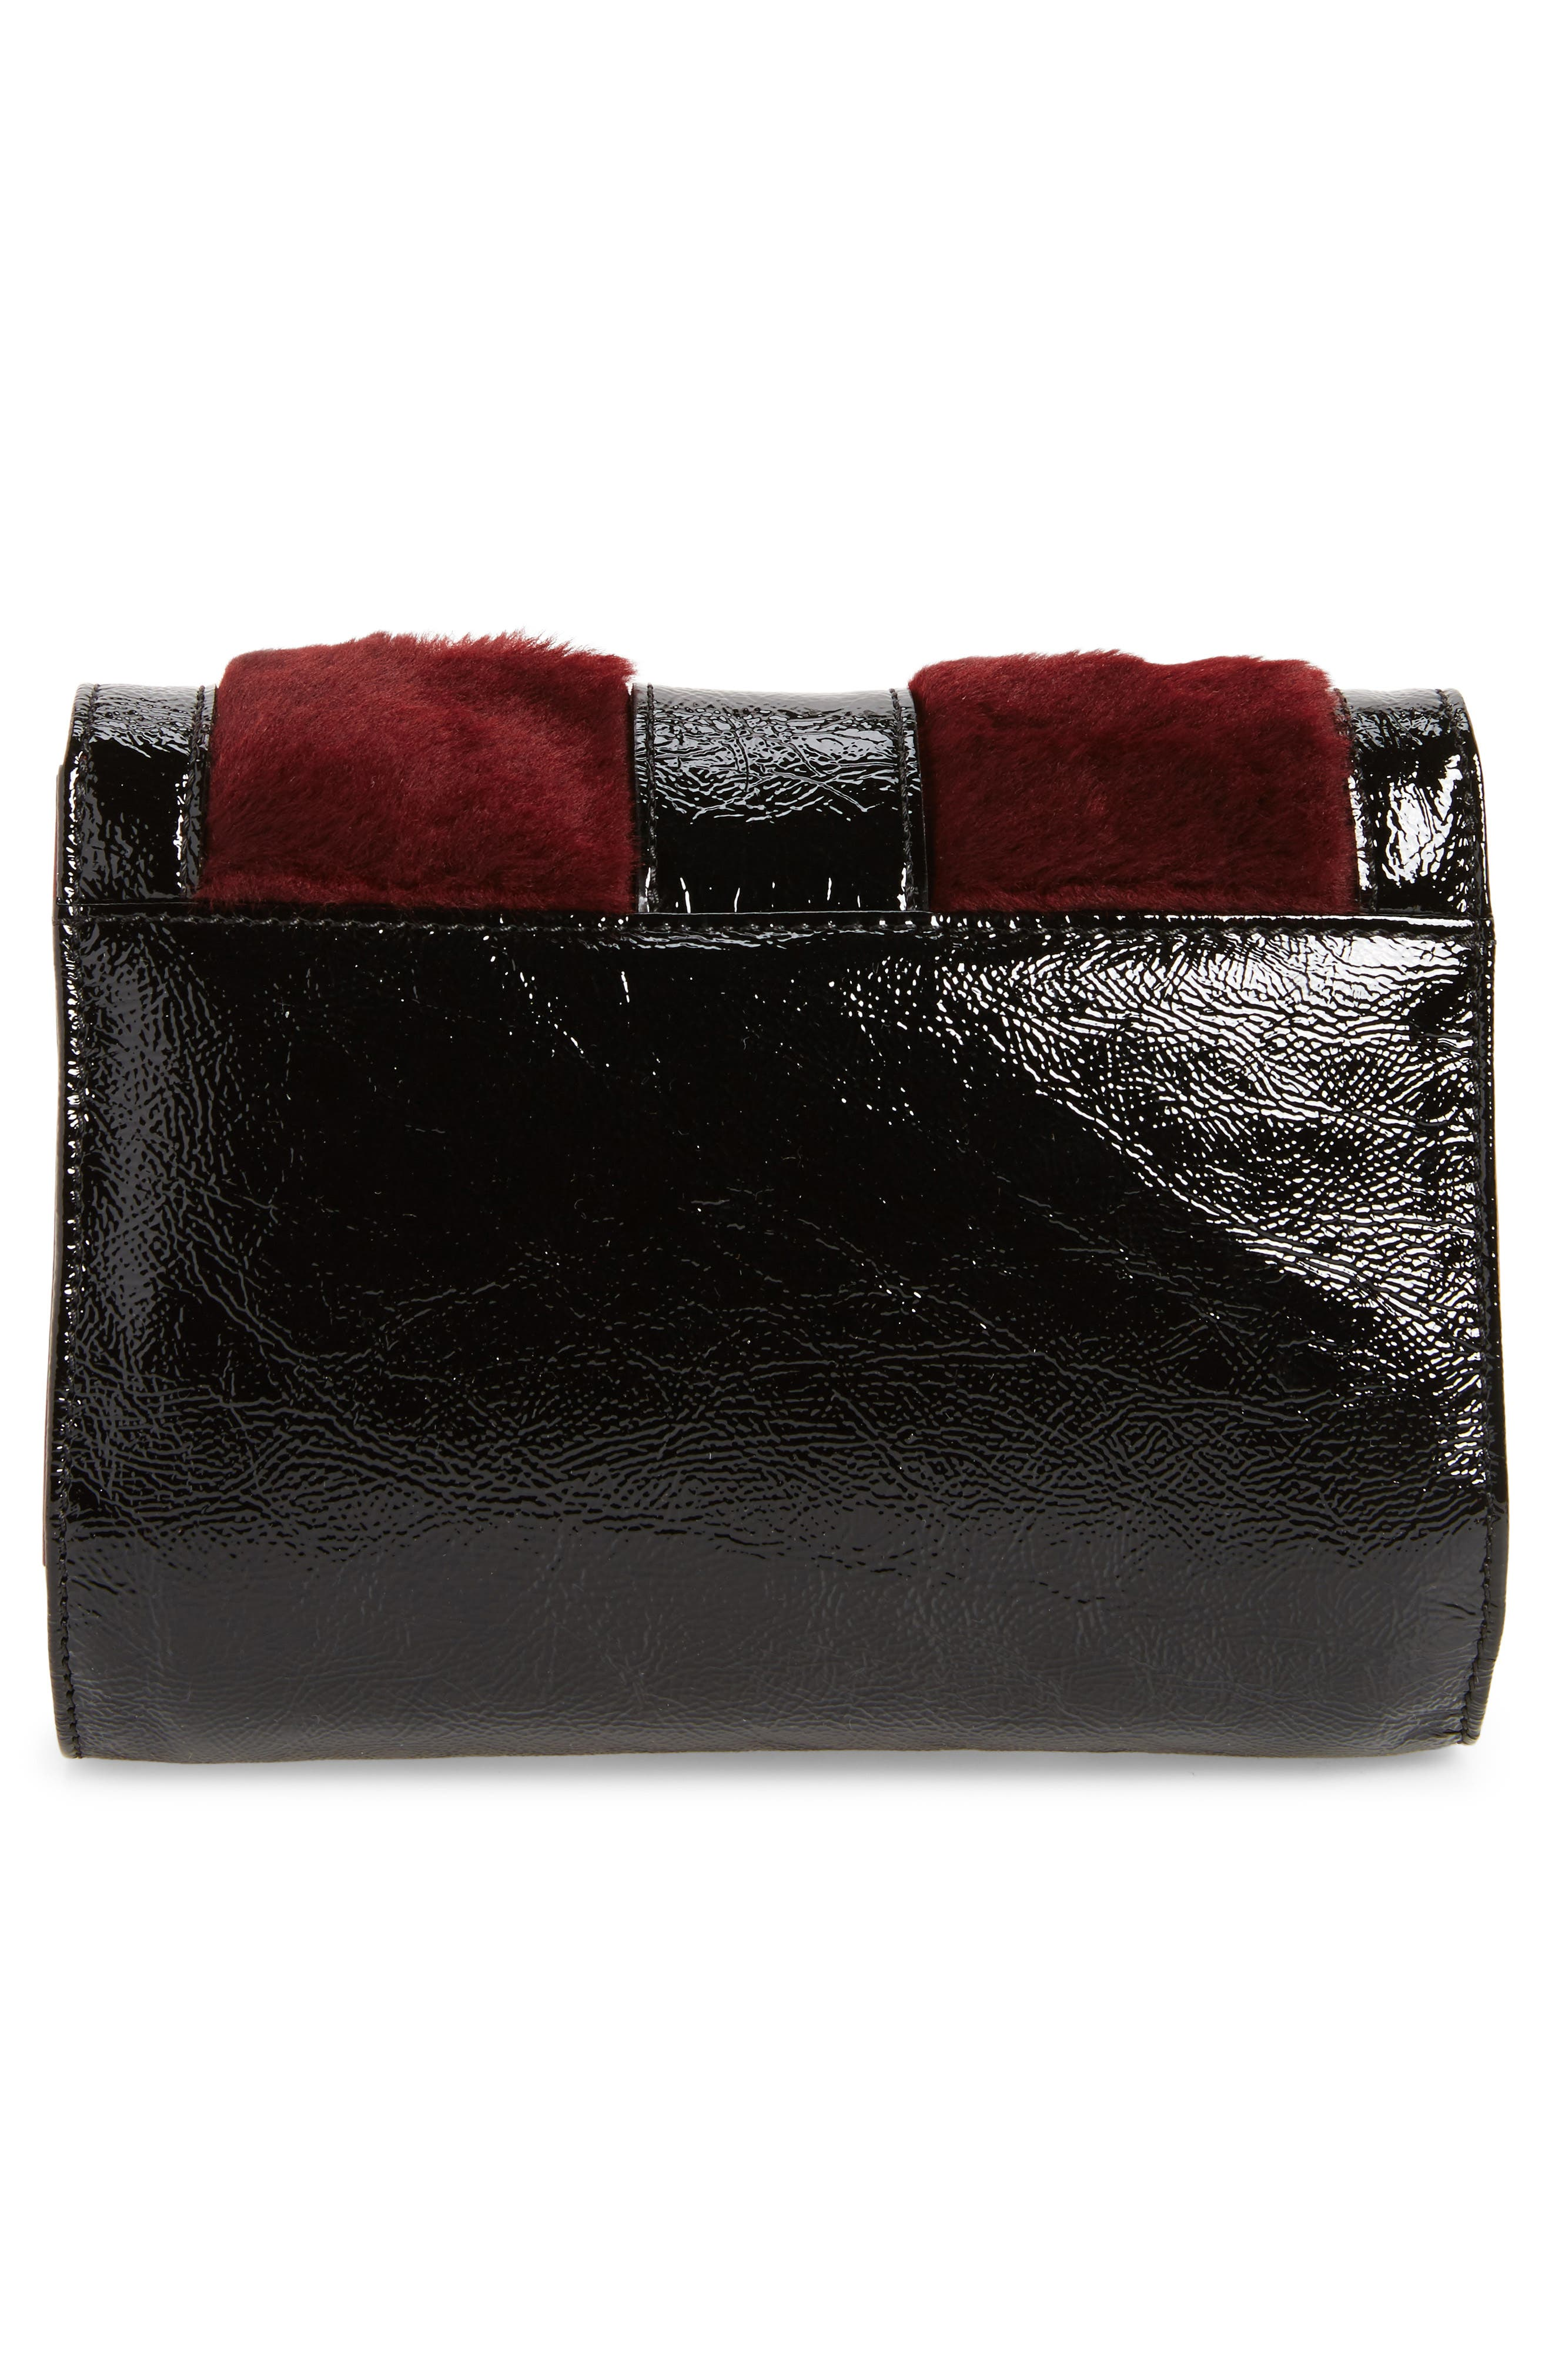 Alternate Image 2  - Longchamp La Baronne Genuine Shearling Trim Leather Clutch